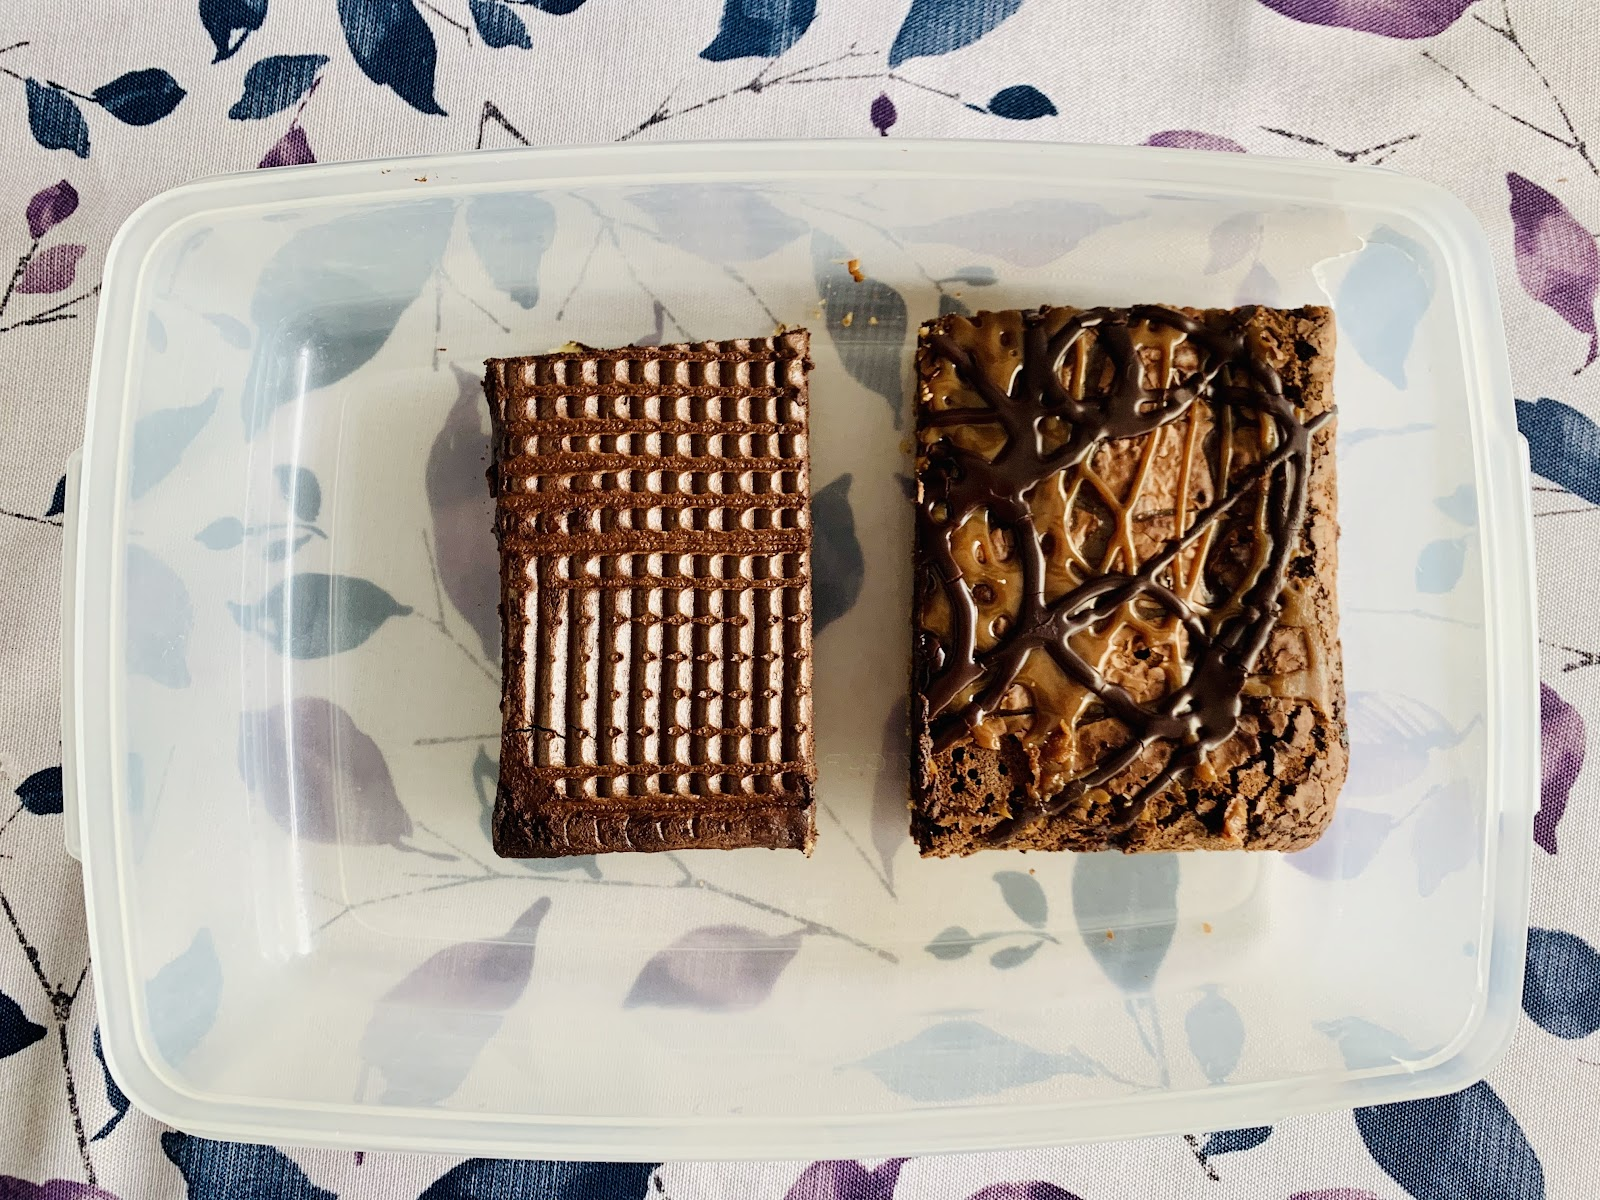 Container with two slabs of brownies.